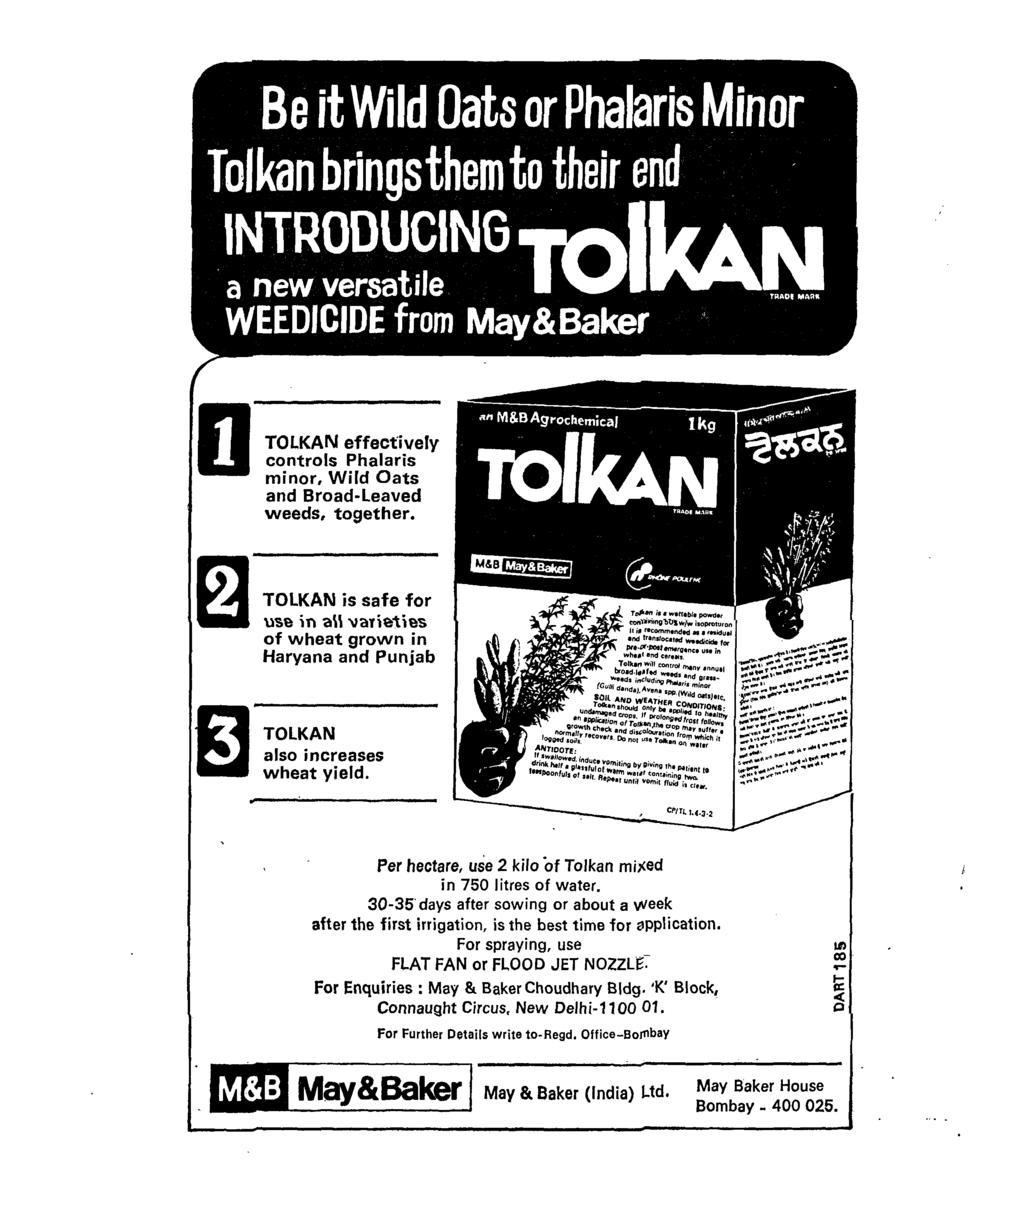 o TOLKAN effectively controls Phalaris minor, Wild Oats and Broad-Leaved weeds, together.